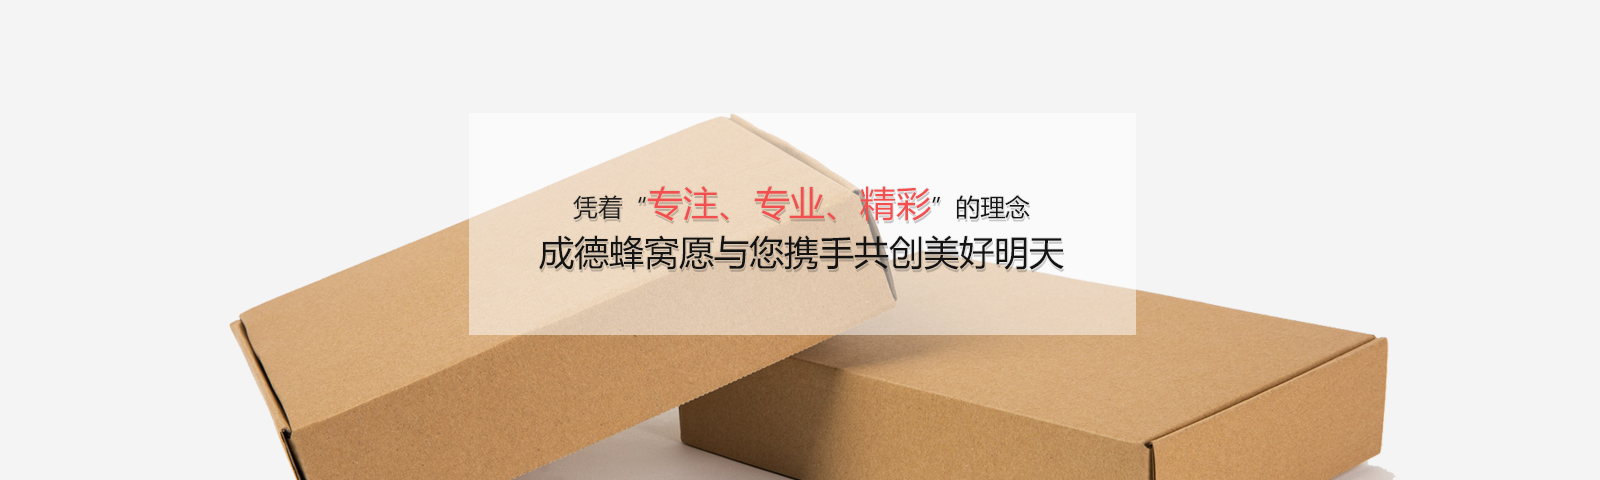 http://www.cdfwjx.cn/data/upload/201912/20191218111043_958.jpg